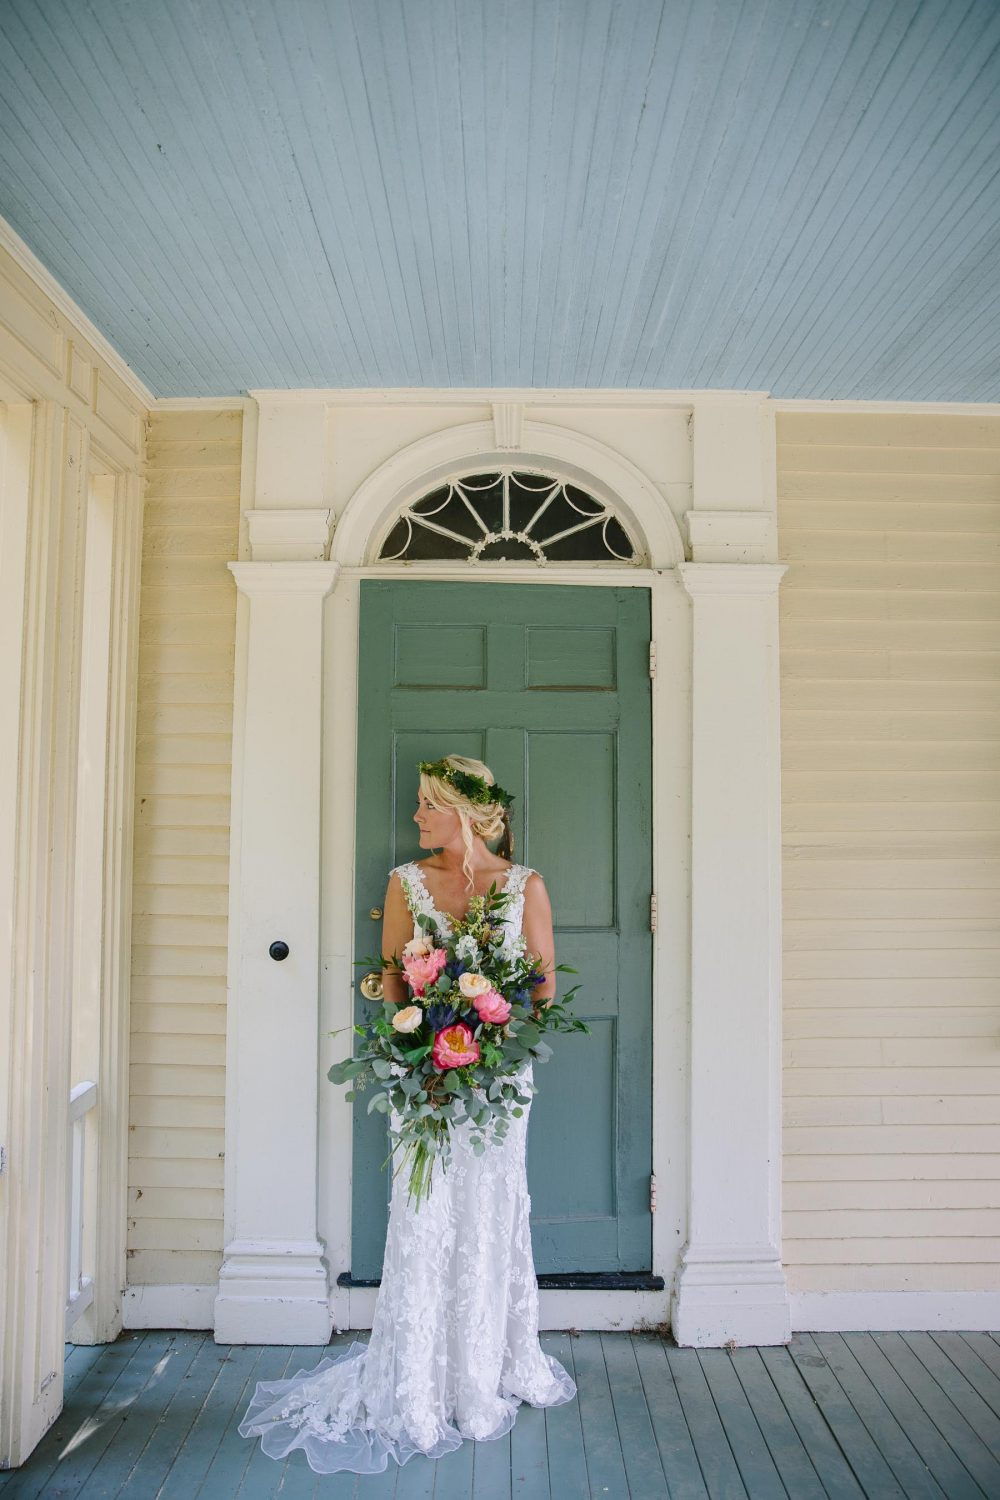 012-boho-floral-crown-historic-mansion-wedding